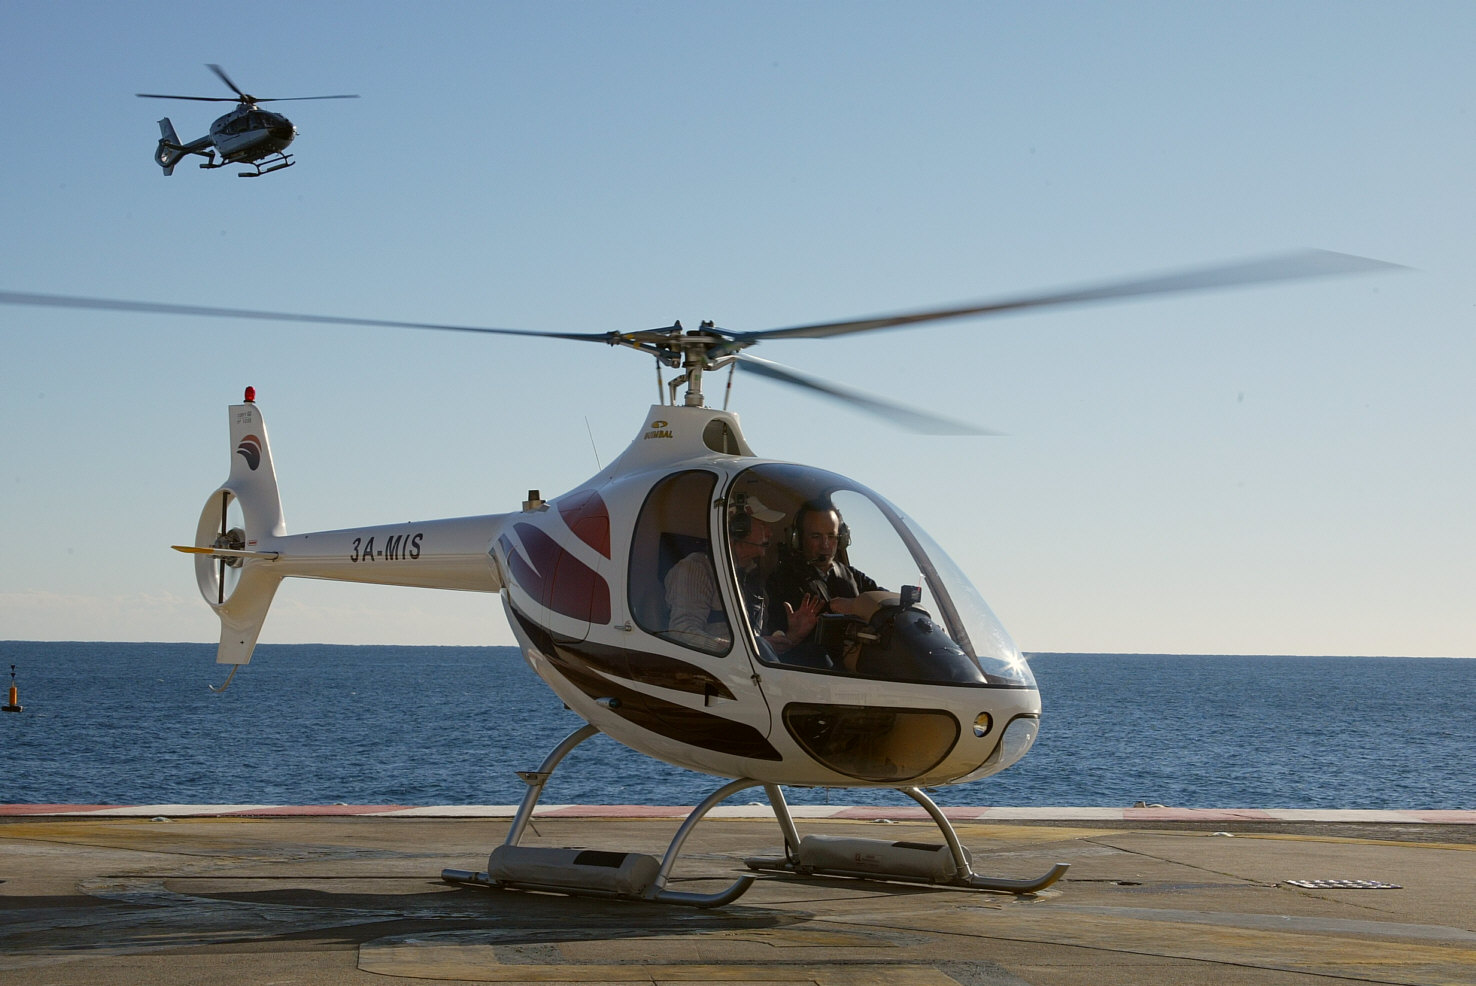 ultralight helicopter manufacturers with View on Corben Baby Ace besides View as well Airbike additionally Fib Flying Inflatable Boat moreover Popup info.